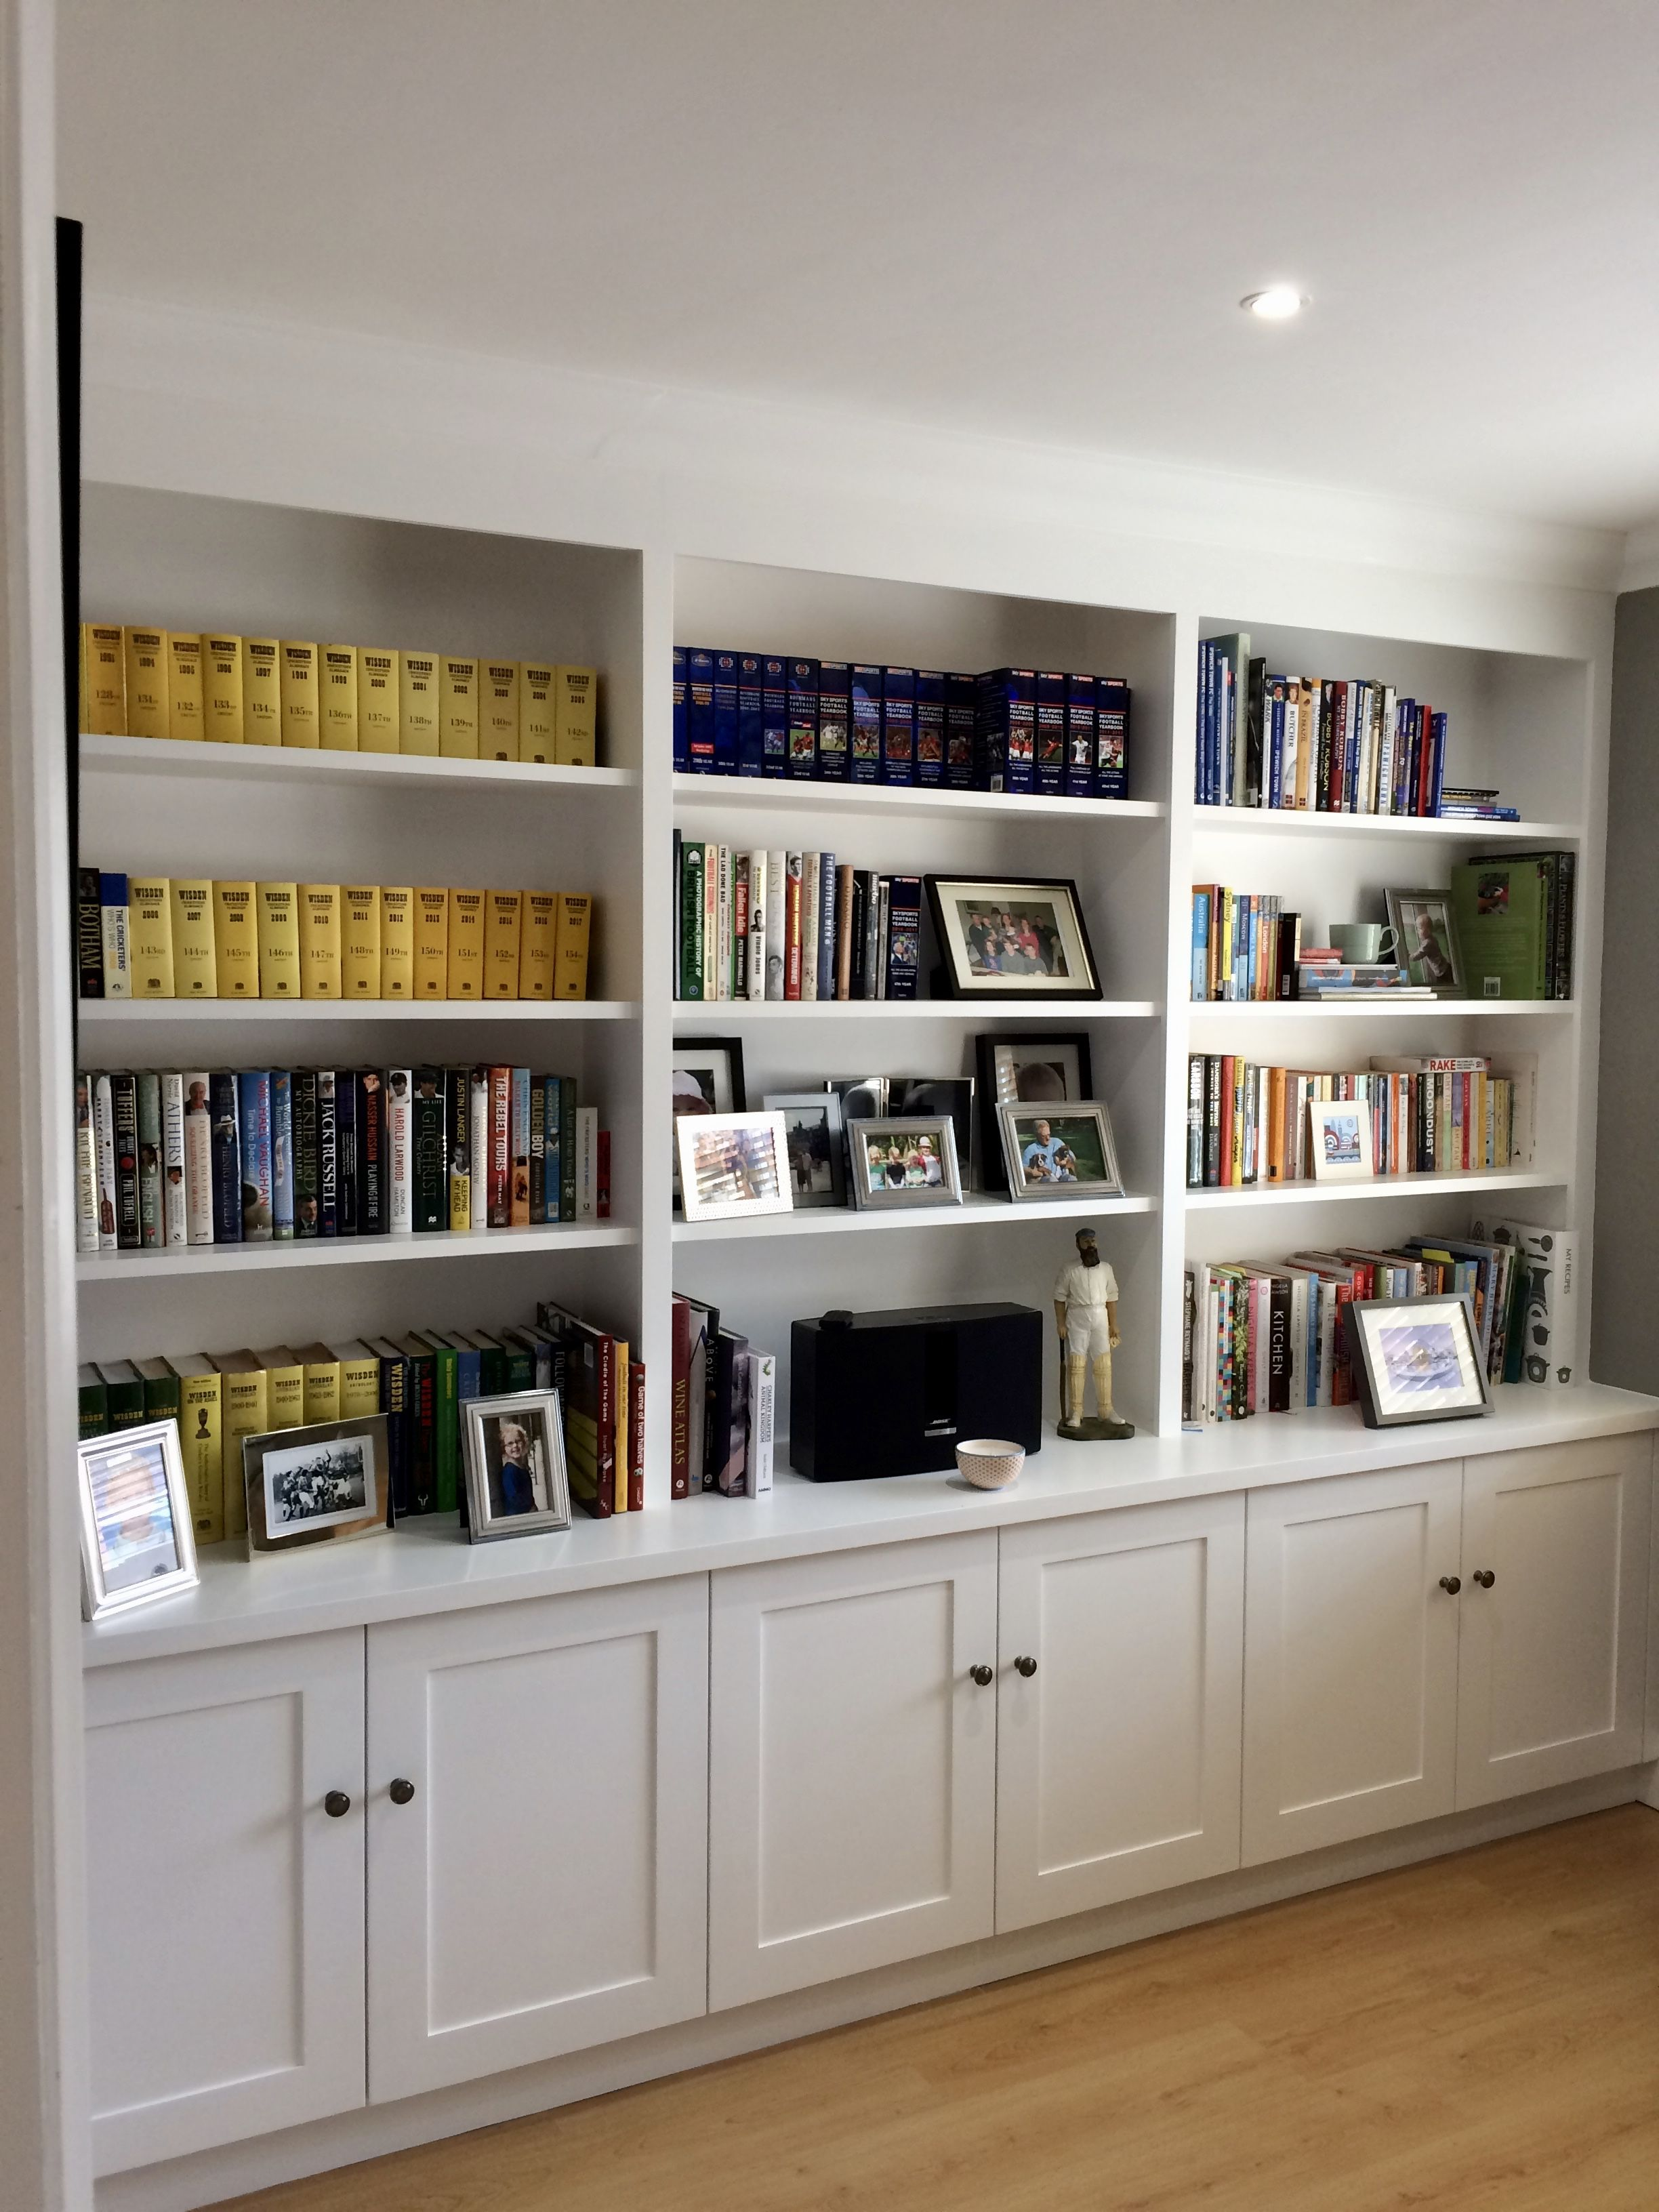 Wall To Wall Shelving With Cupboard Storage To Base Useful Shelving For Books Photos A Home Office Shelves Built In Shelves Living Room Living Room Bookcase